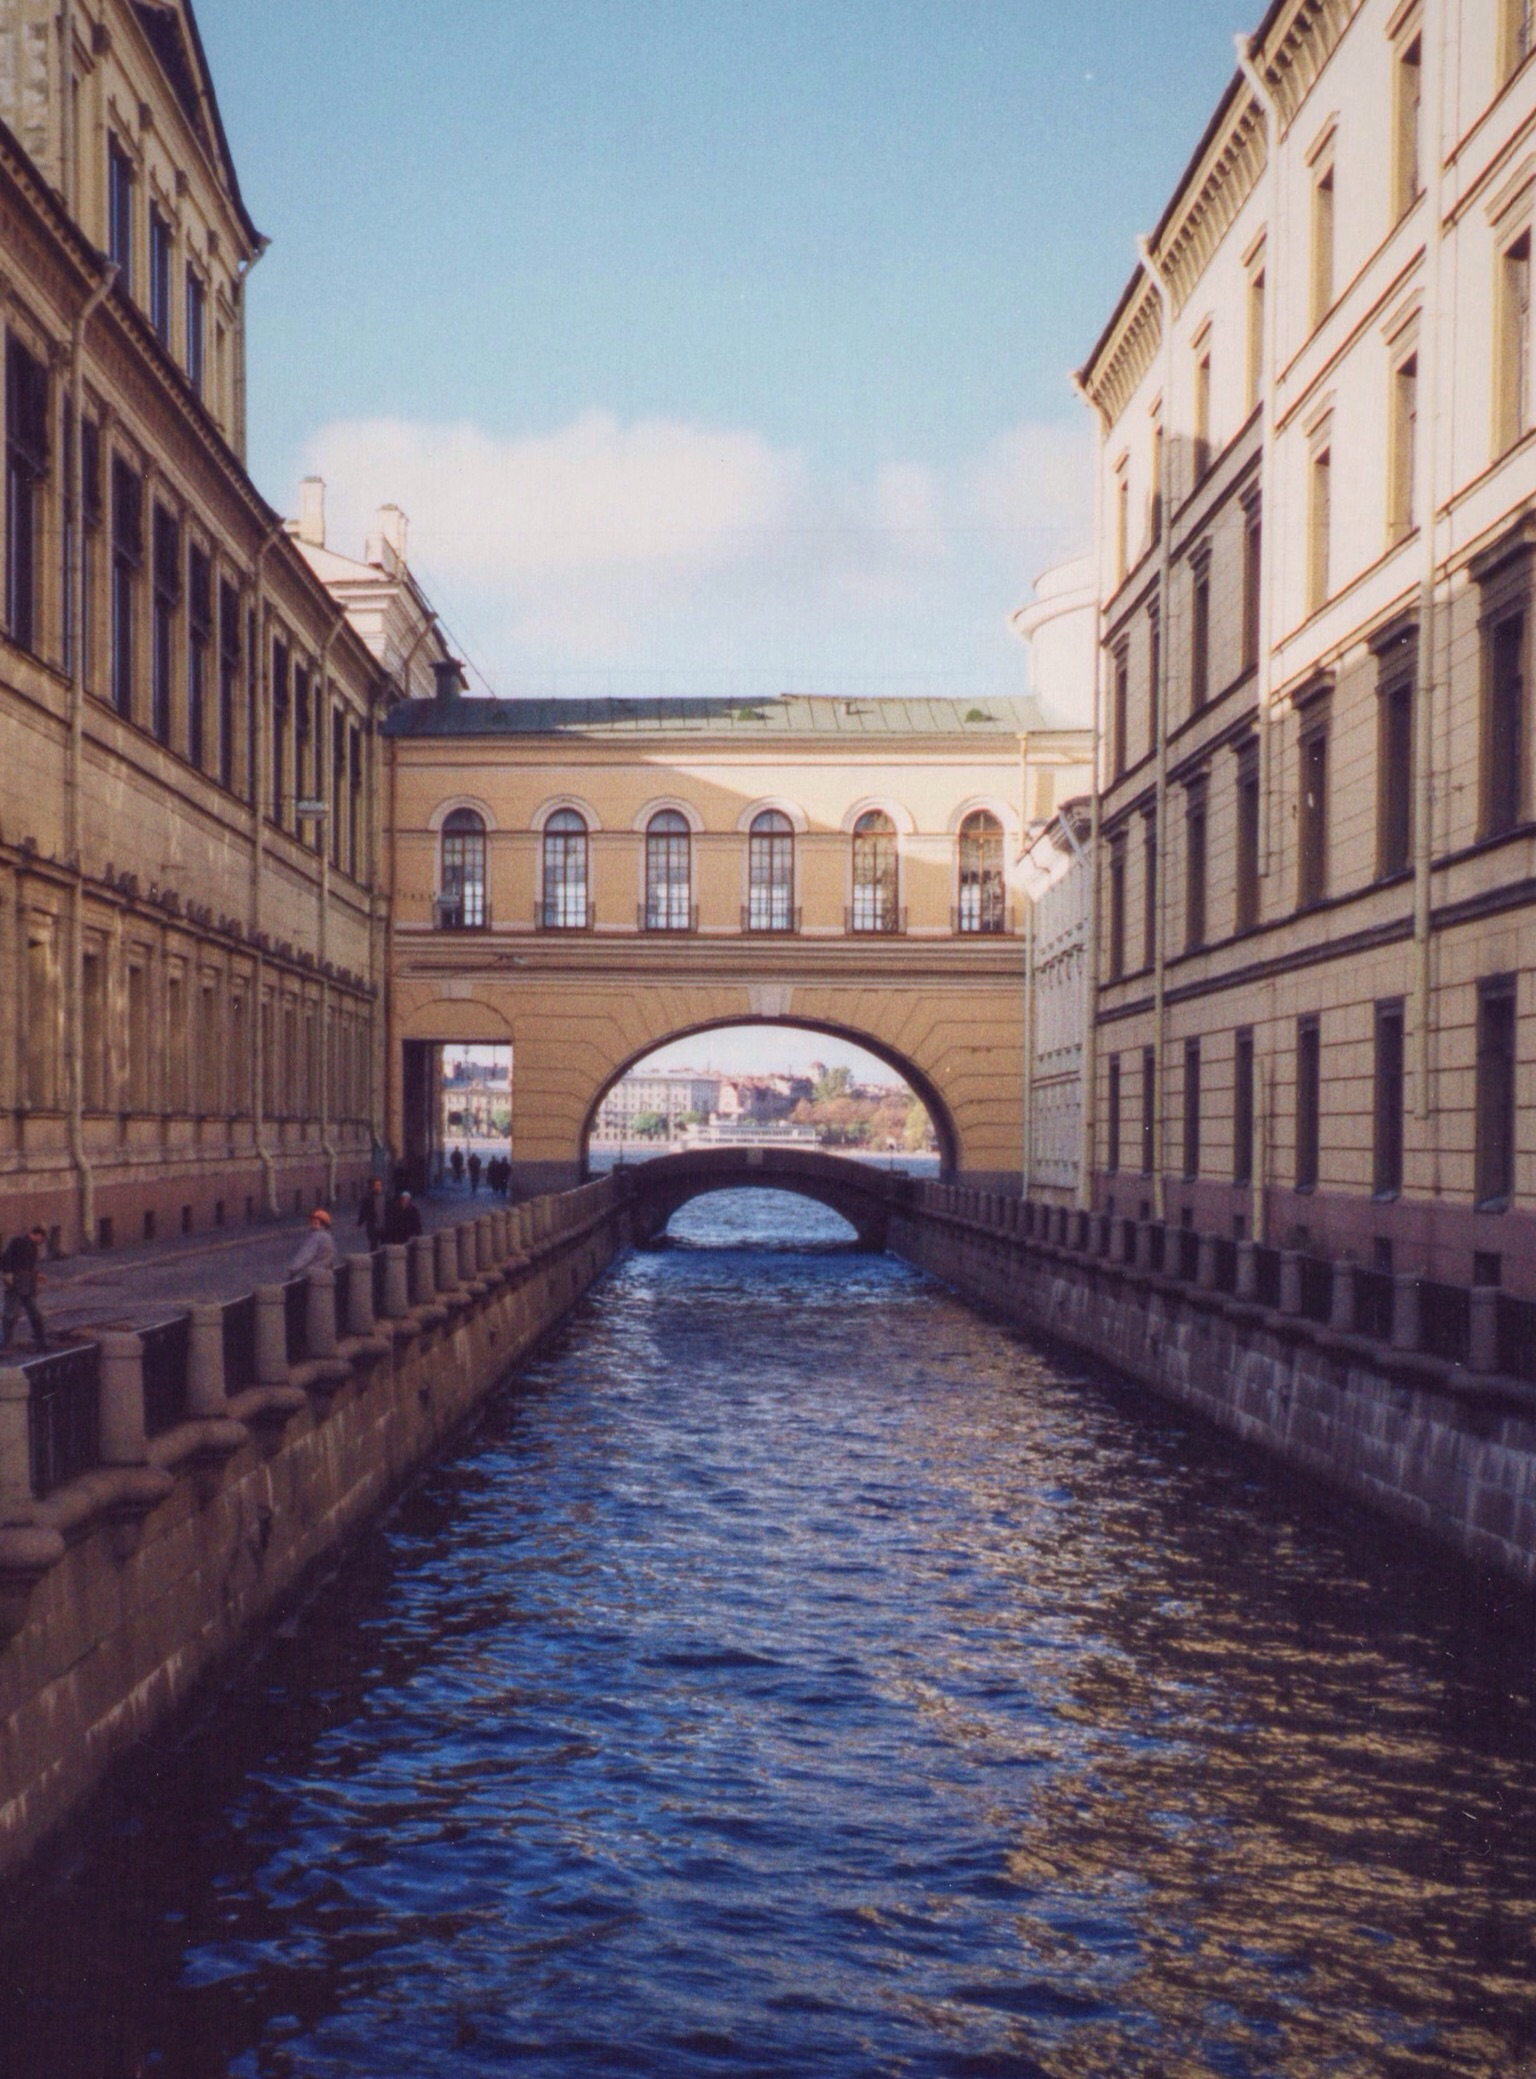 One of St. Petersburg's many canals, this one flowing between buildings that make up the Hermitage Museum, the former Winter Palace of the czars.